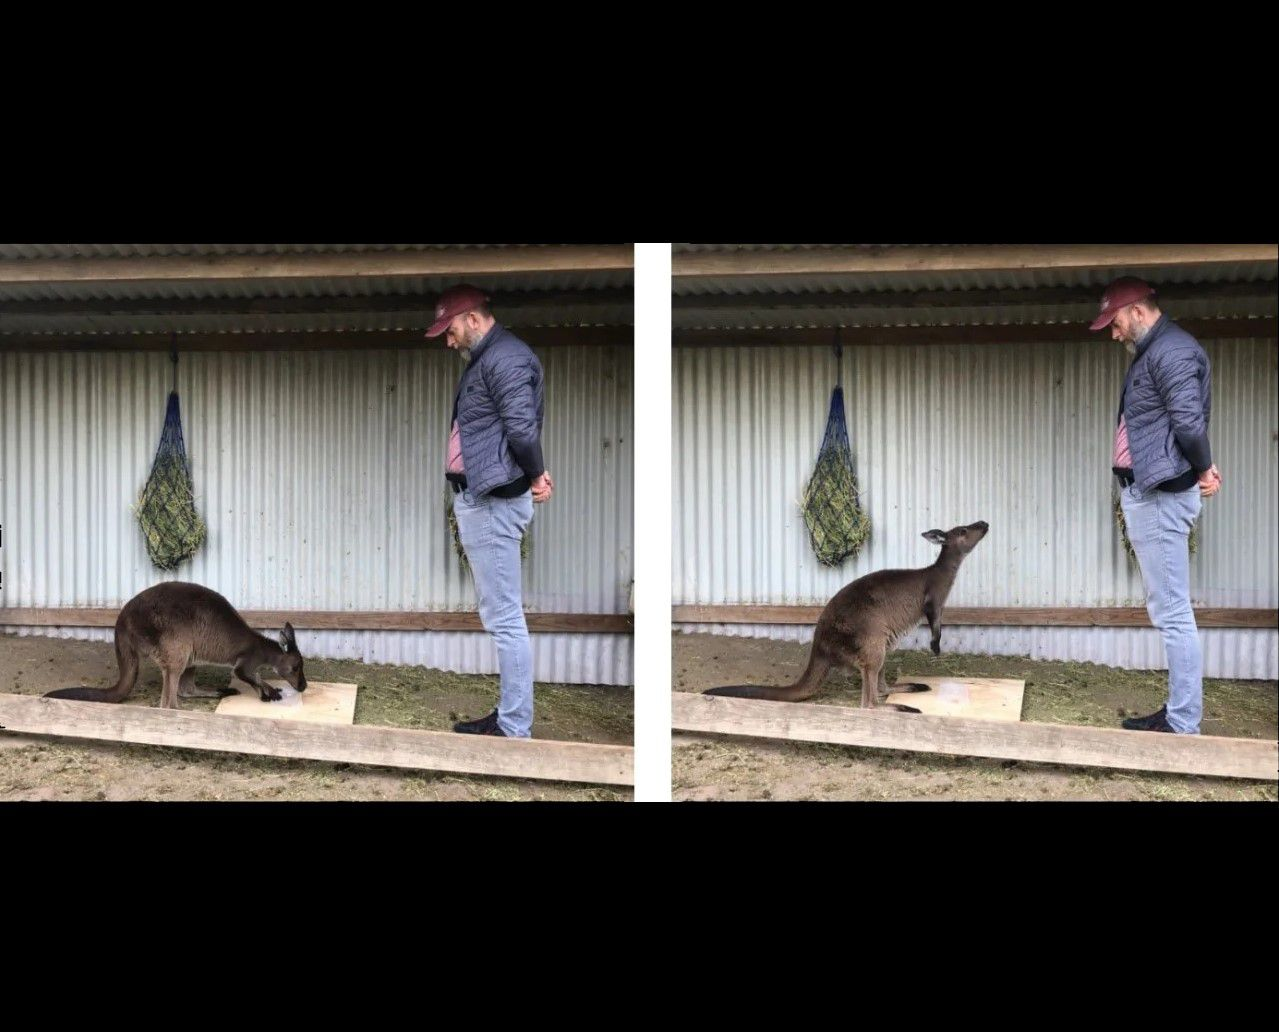 Kangaroos Communicate With Humans Like Dogs in Experiments